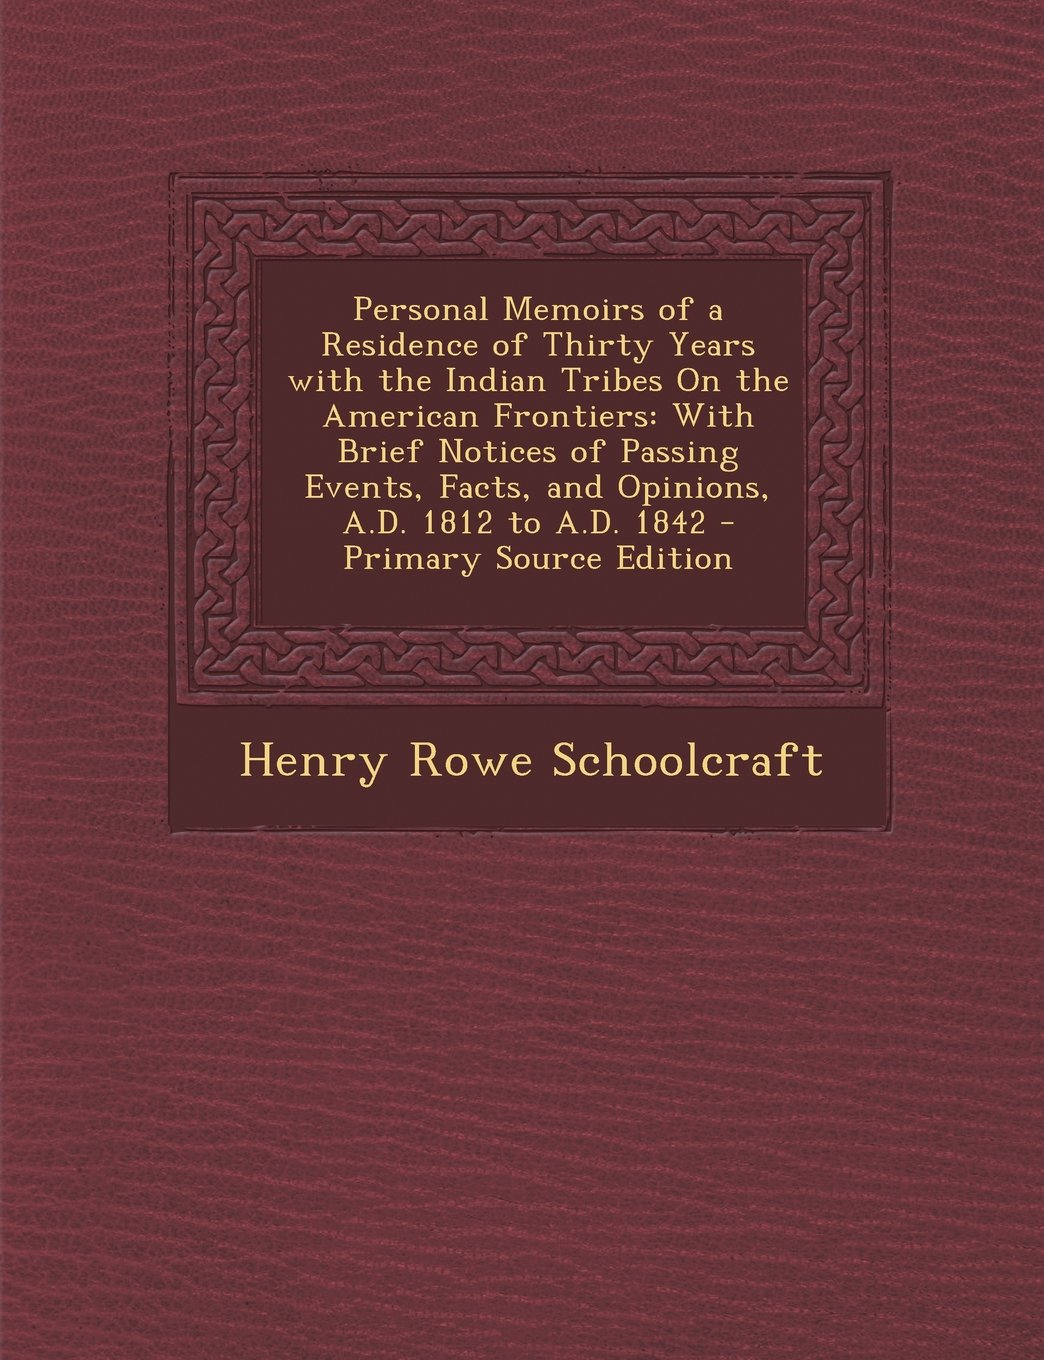 Download Personal Memoirs of a Residence of Thirty Years with the Indian Tribes On the American Frontiers: With Brief Notices of Passing Events, Facts, and Opinions, A.D. 1812 to A.D. 1842 pdf epub